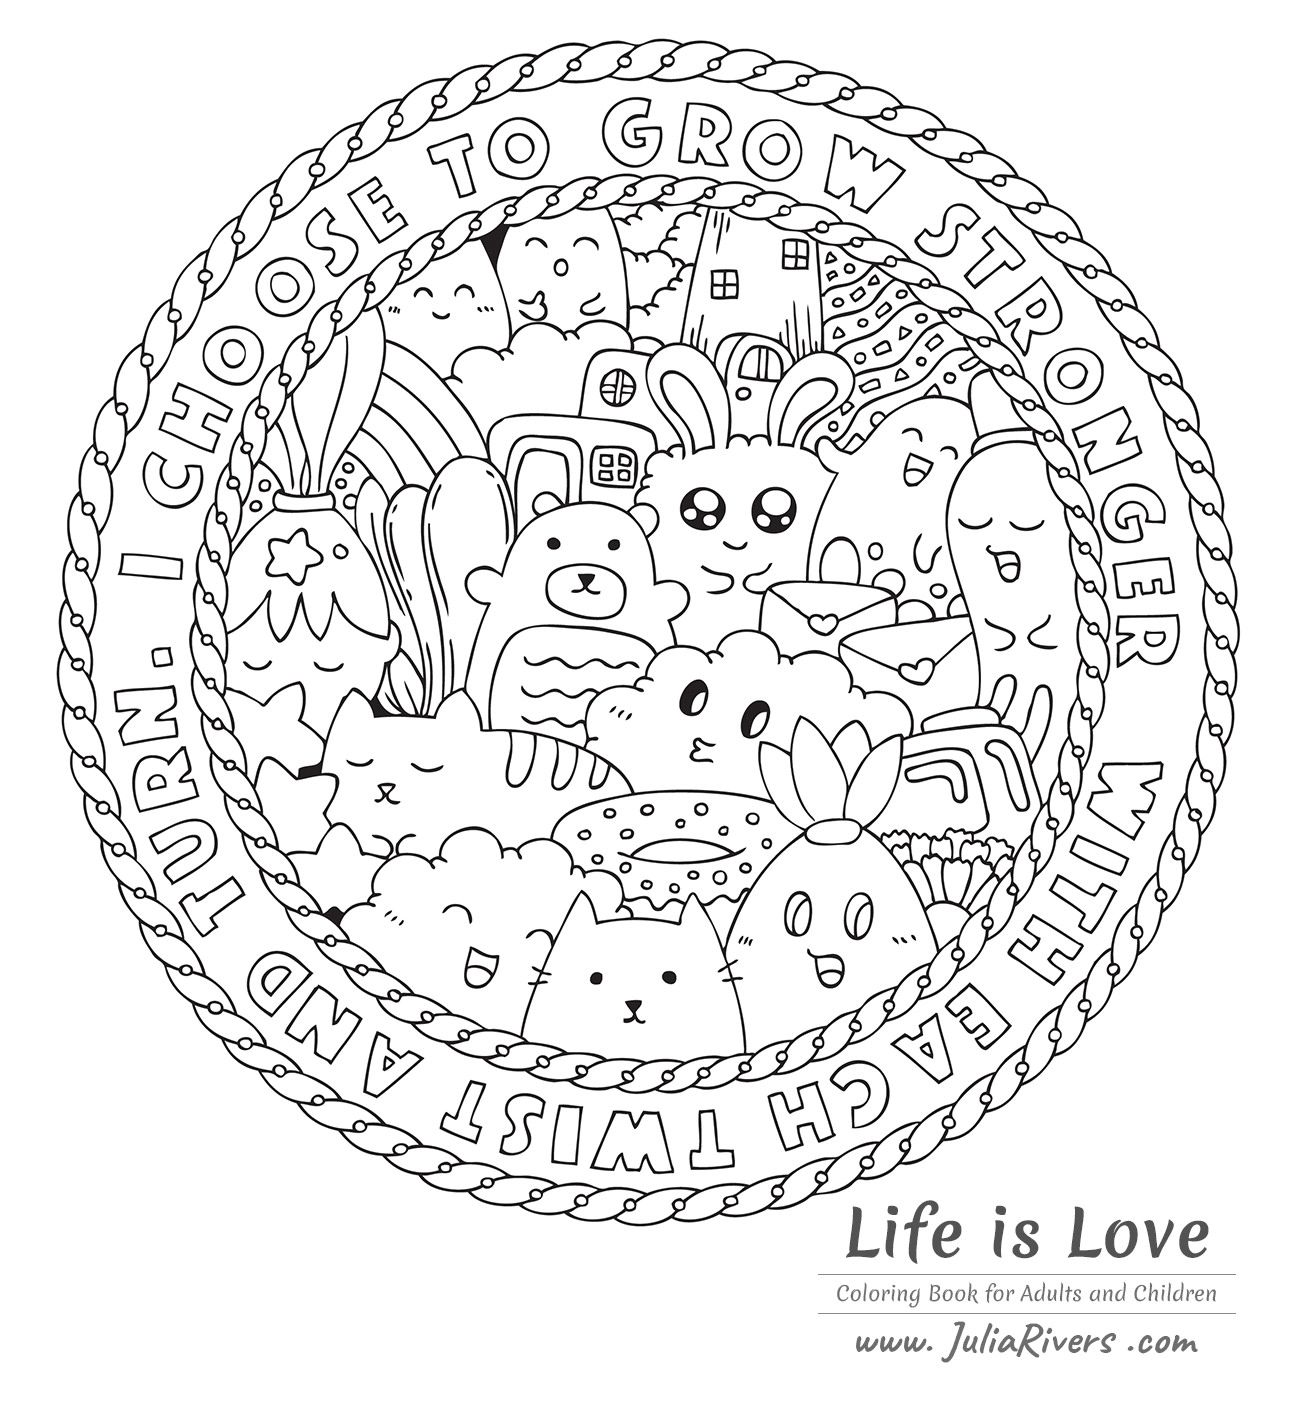 'Life is love' : Beautiful coloring page full of funny